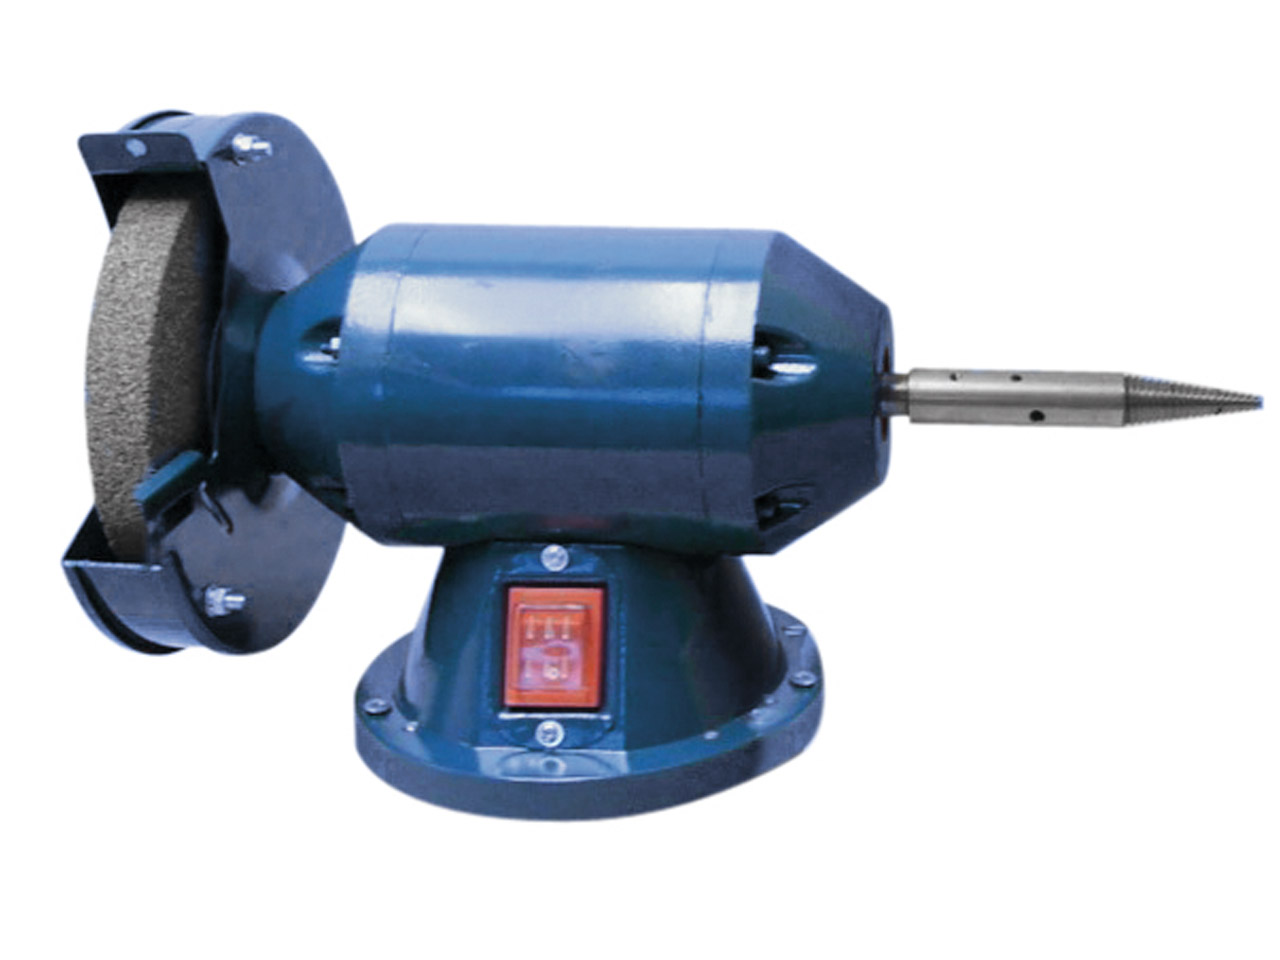 Economy Bench Grinder Polisher 200 Watt 150mm And Spindle